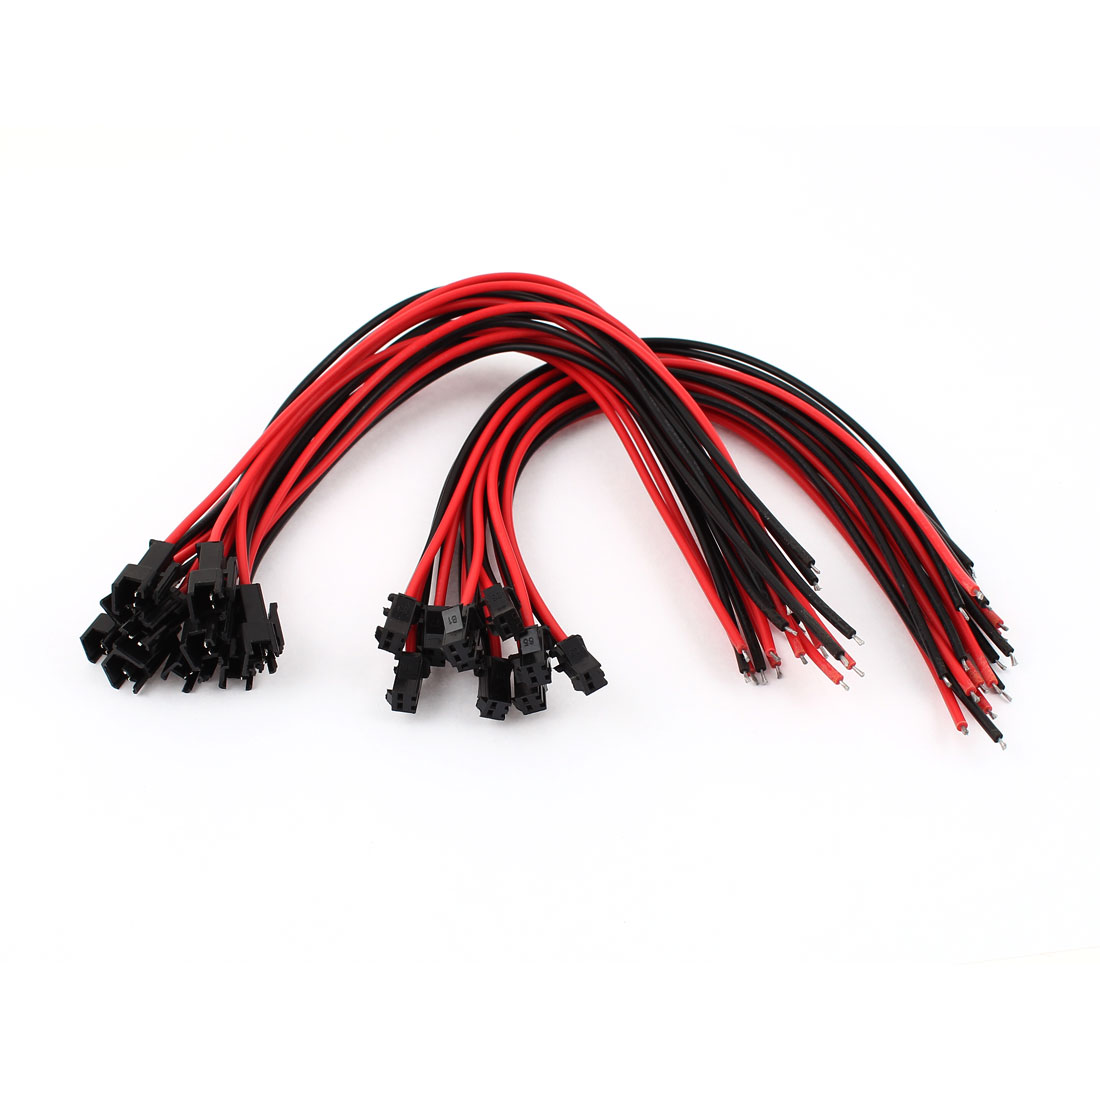 10 Pairs Black Red 25cm Long 2-Terminal EL Wires Pigtail Connector